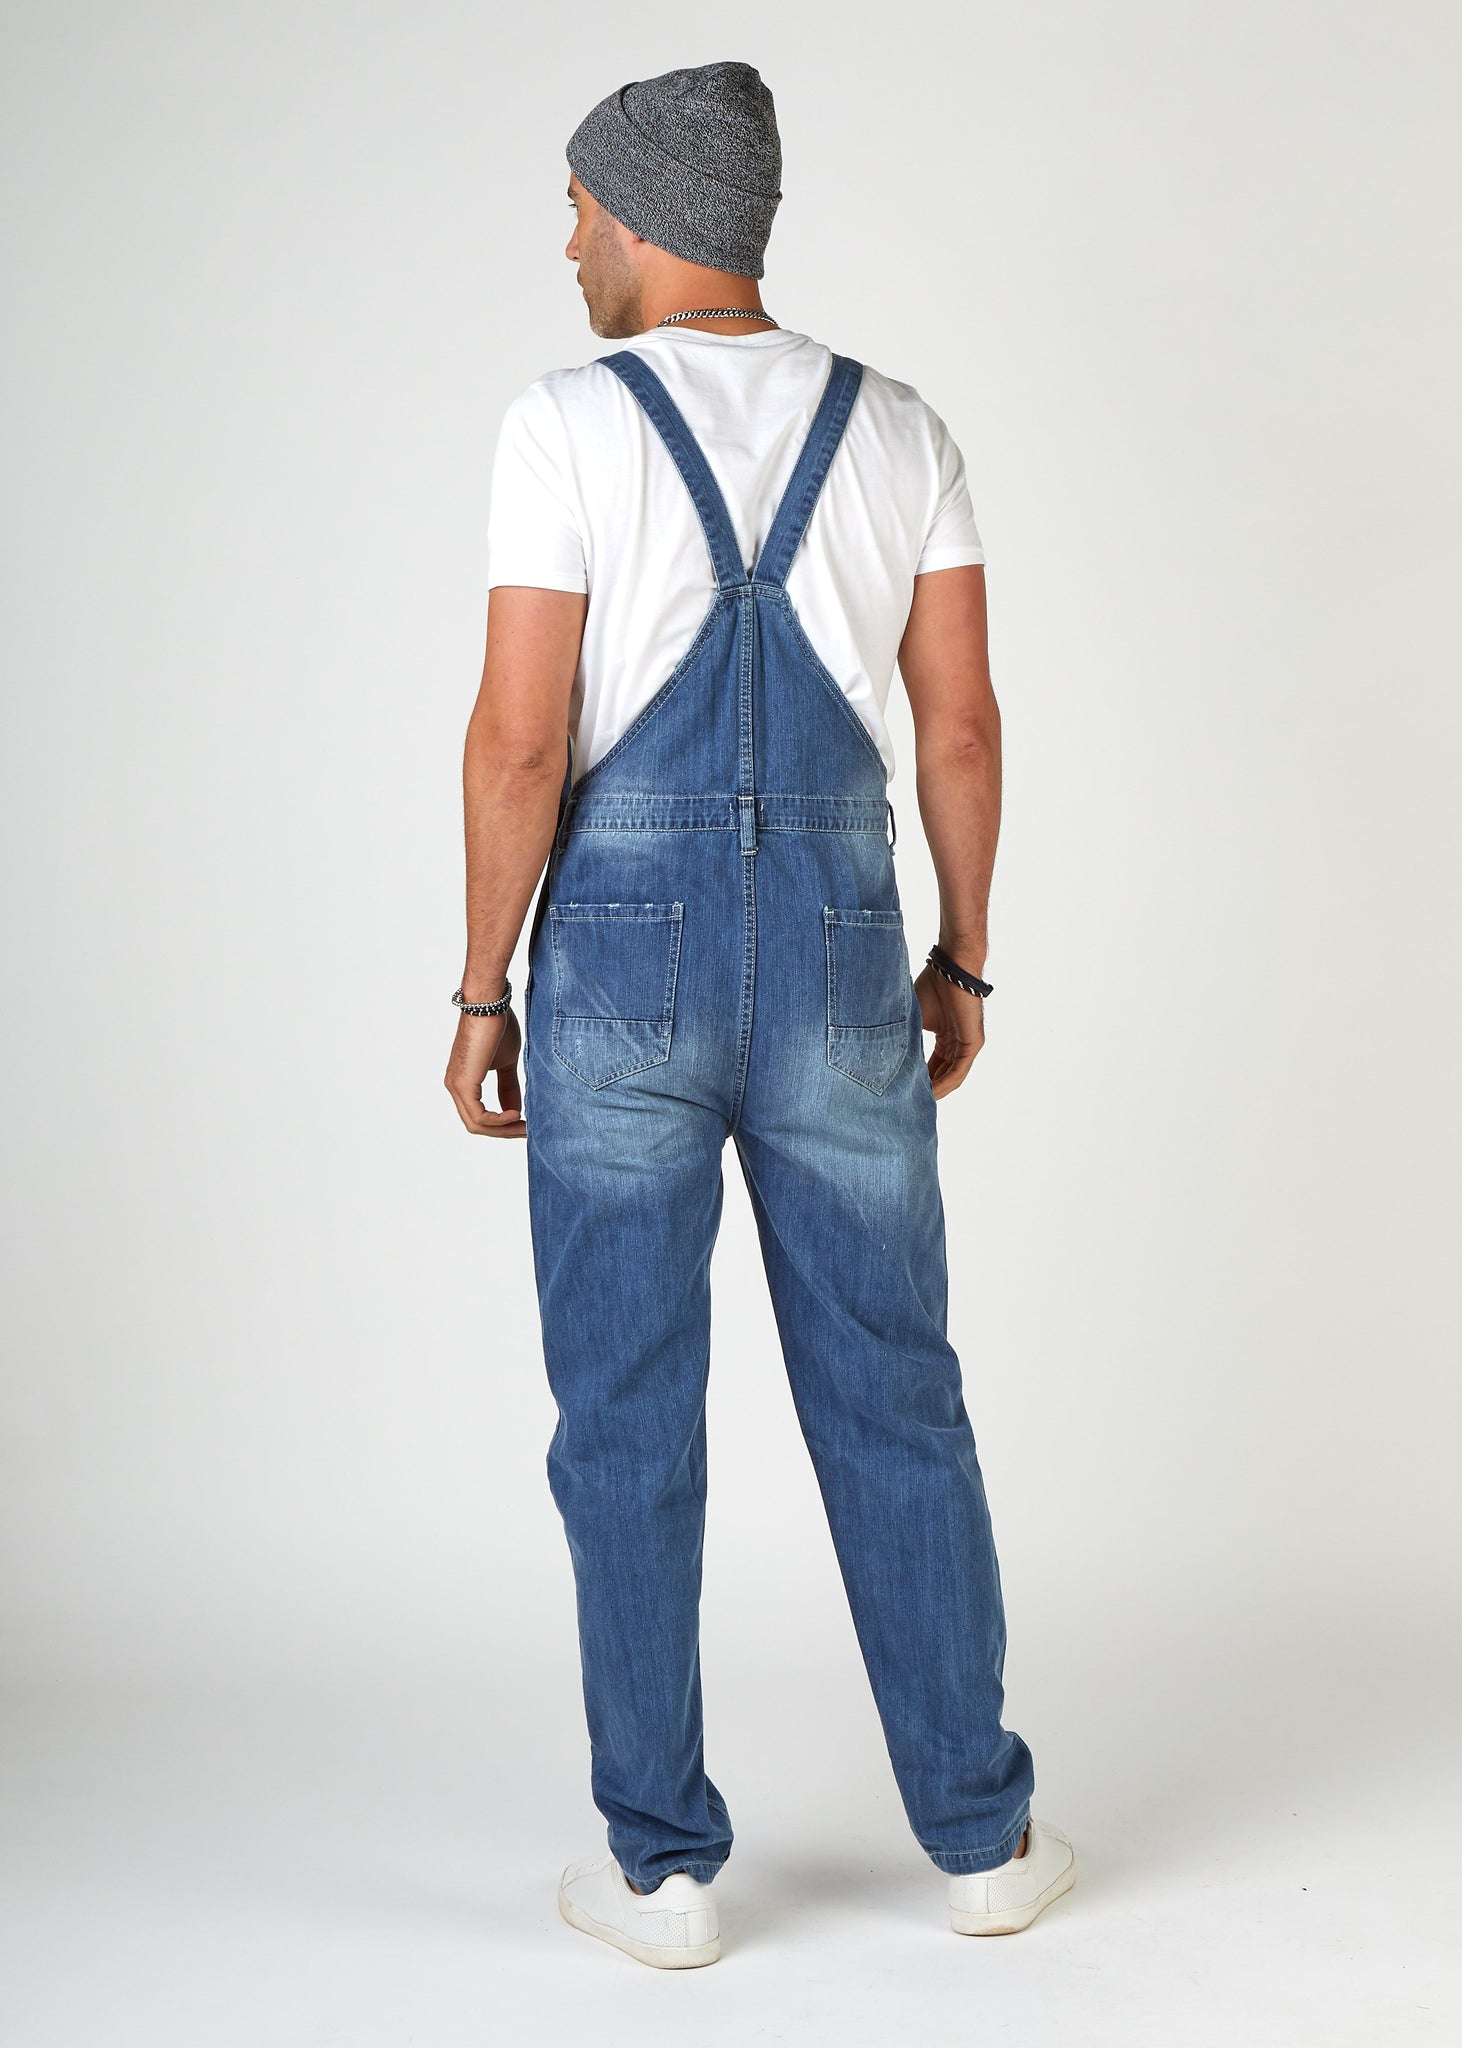 Rear full-length pose looking left, wearing Bertie-style, ripped denim bib overalls with view of back straps and pockets.